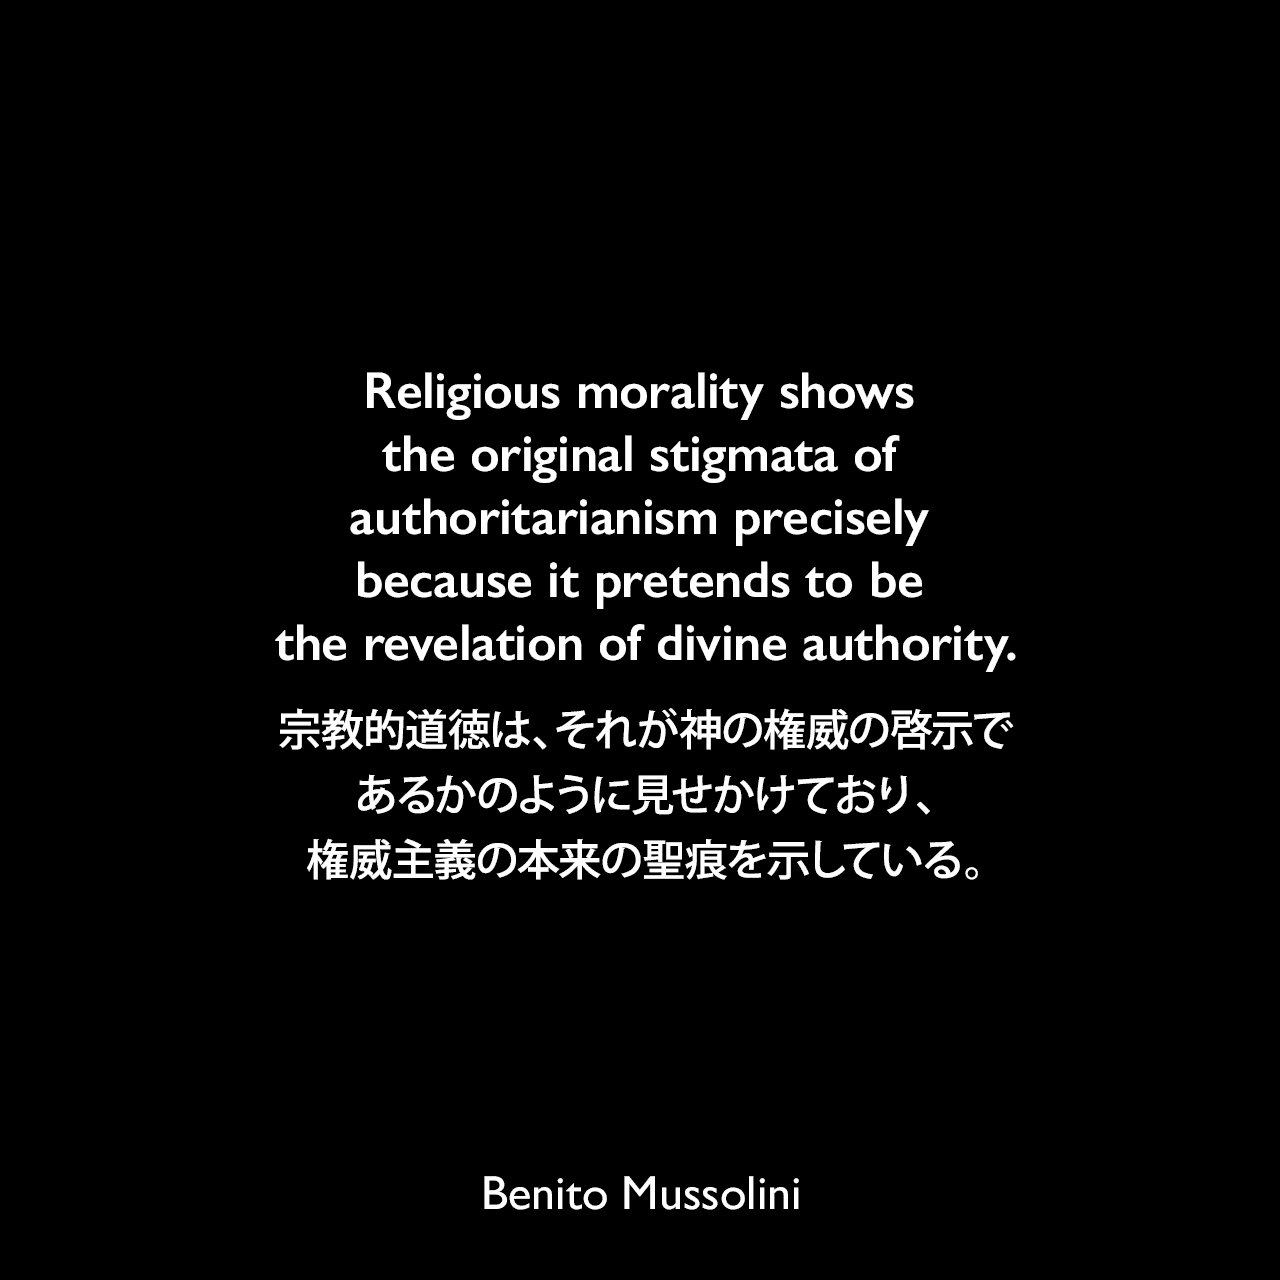 Religious morality shows the original stigmata of authoritarianism precisely because it pretends to be the revelation of divine authority.宗教的道徳は、それが神の権威の啓示であるかのように見せかけており、権威主義の本来の聖痕を示している。- ムッソリーニによる本「God Does Not Exist.」(1904年)よりBenito Mussolini